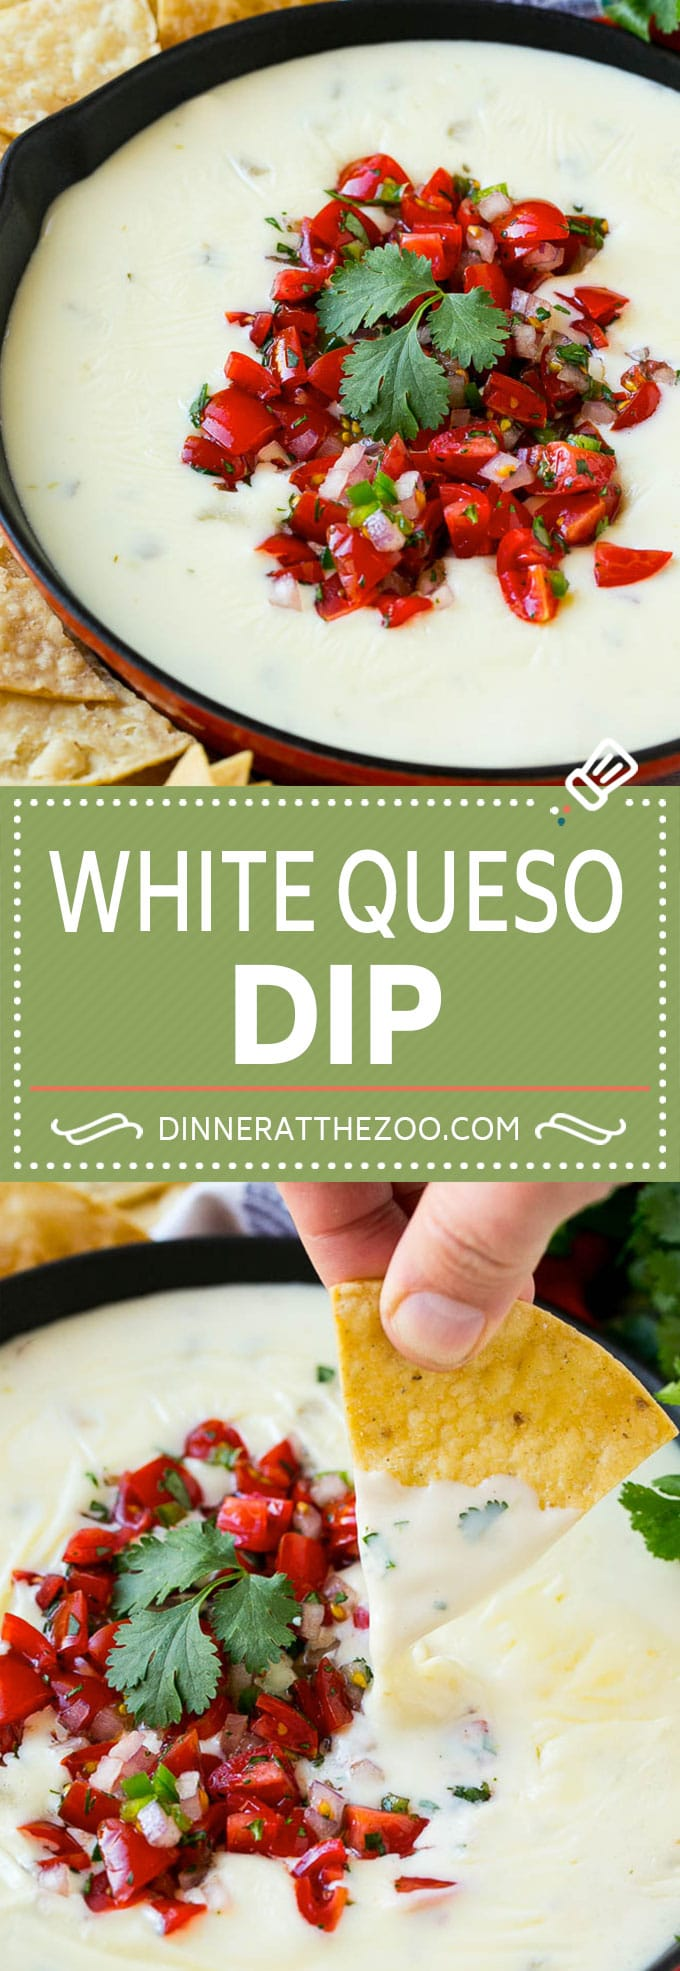 White Queso Dip Recipe | Mexican Cheese Dip | Queso Sauce #queso #dip #appetizer #cheese #dinneratthezoo